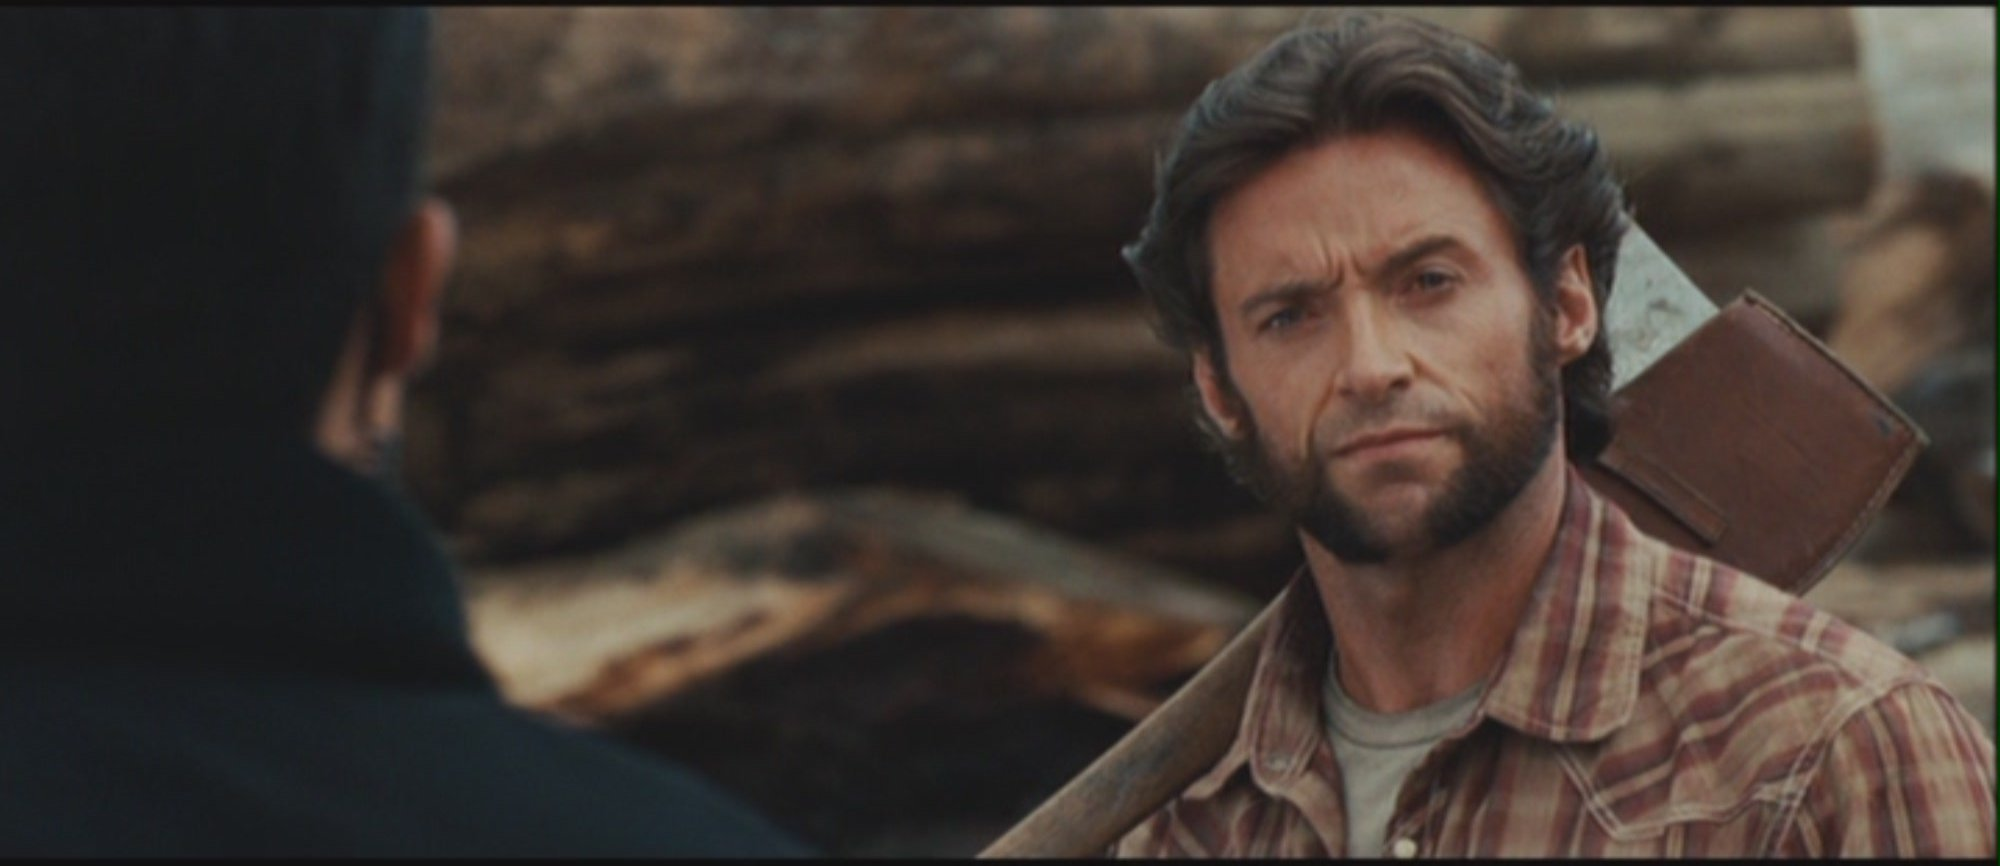 xmen origins wolverine ozalots hq if you scroll up to the top of this page on the forum there is a familiar looking image posted